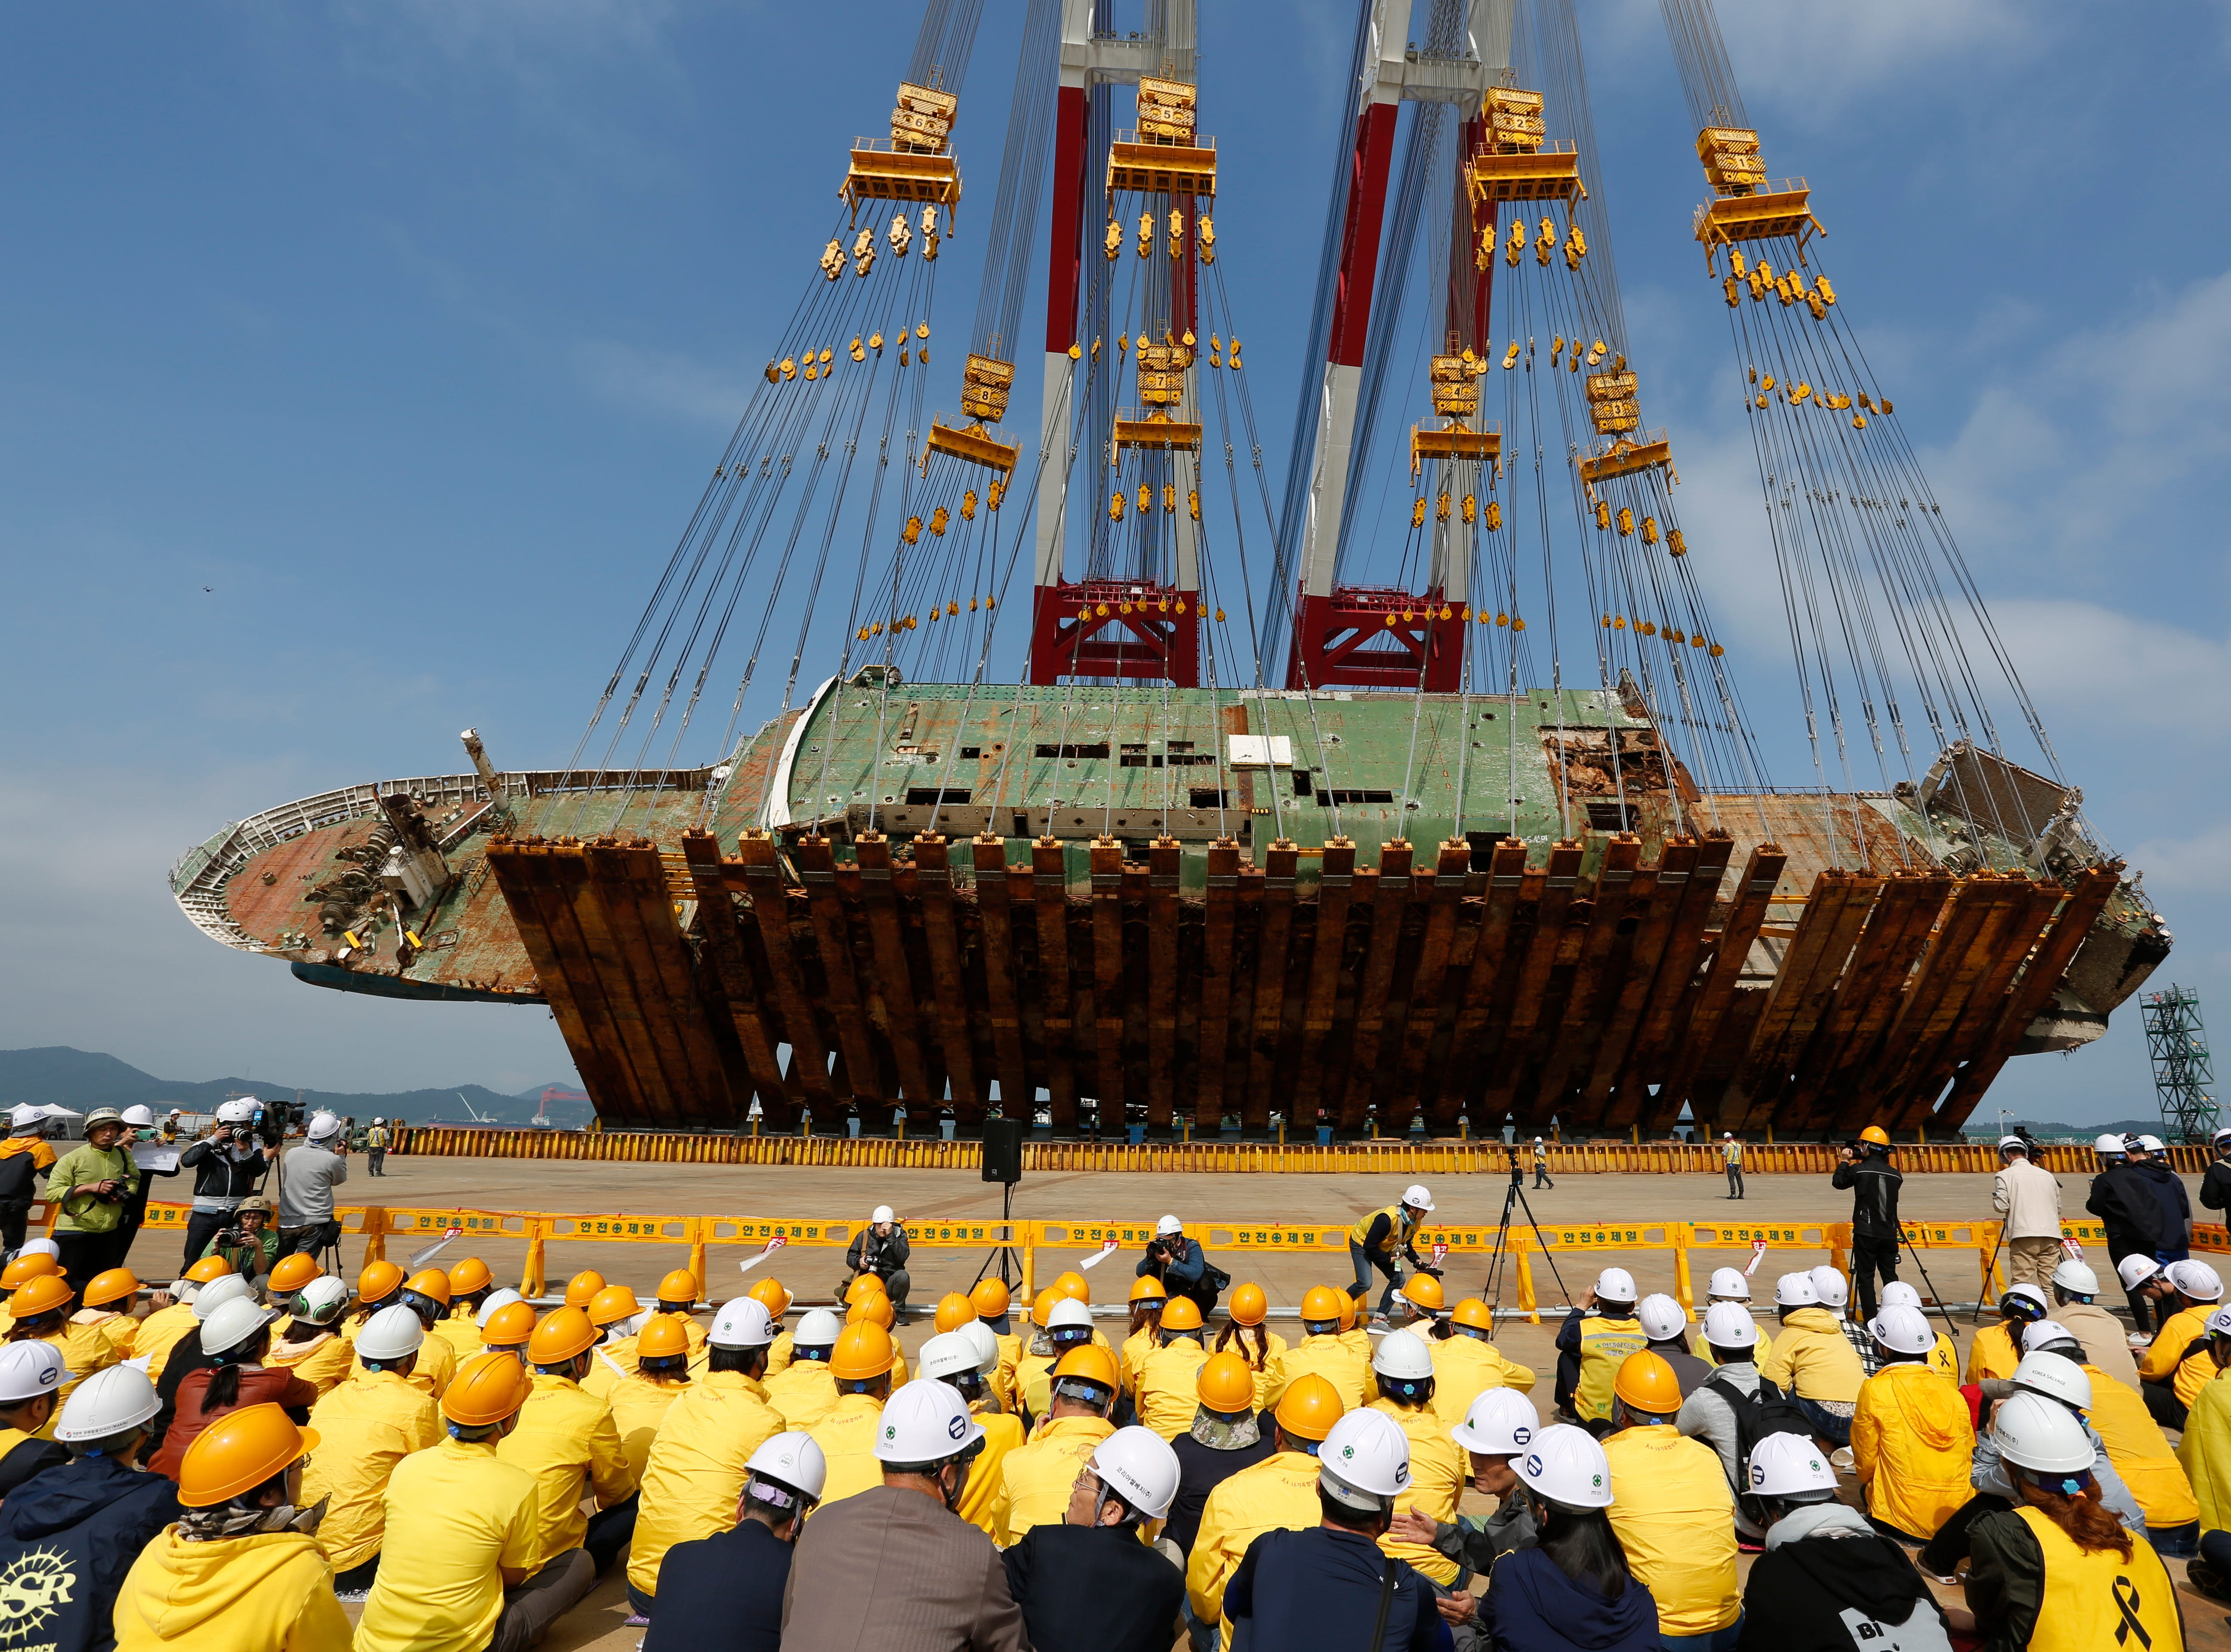 May 10, 2018: Relatives of Sewol ferry victims watch as the salvaged ferry is lifted from its side to an upright position at a port in Mokpo, 410 kilometers southwest of Seoul, South Korea. The ferry sunk off the southwestern coast on April 16, 2014, killing 304 people onboard, most of them high school students on an excursion. An investigation into the tragedy is still ongoing.